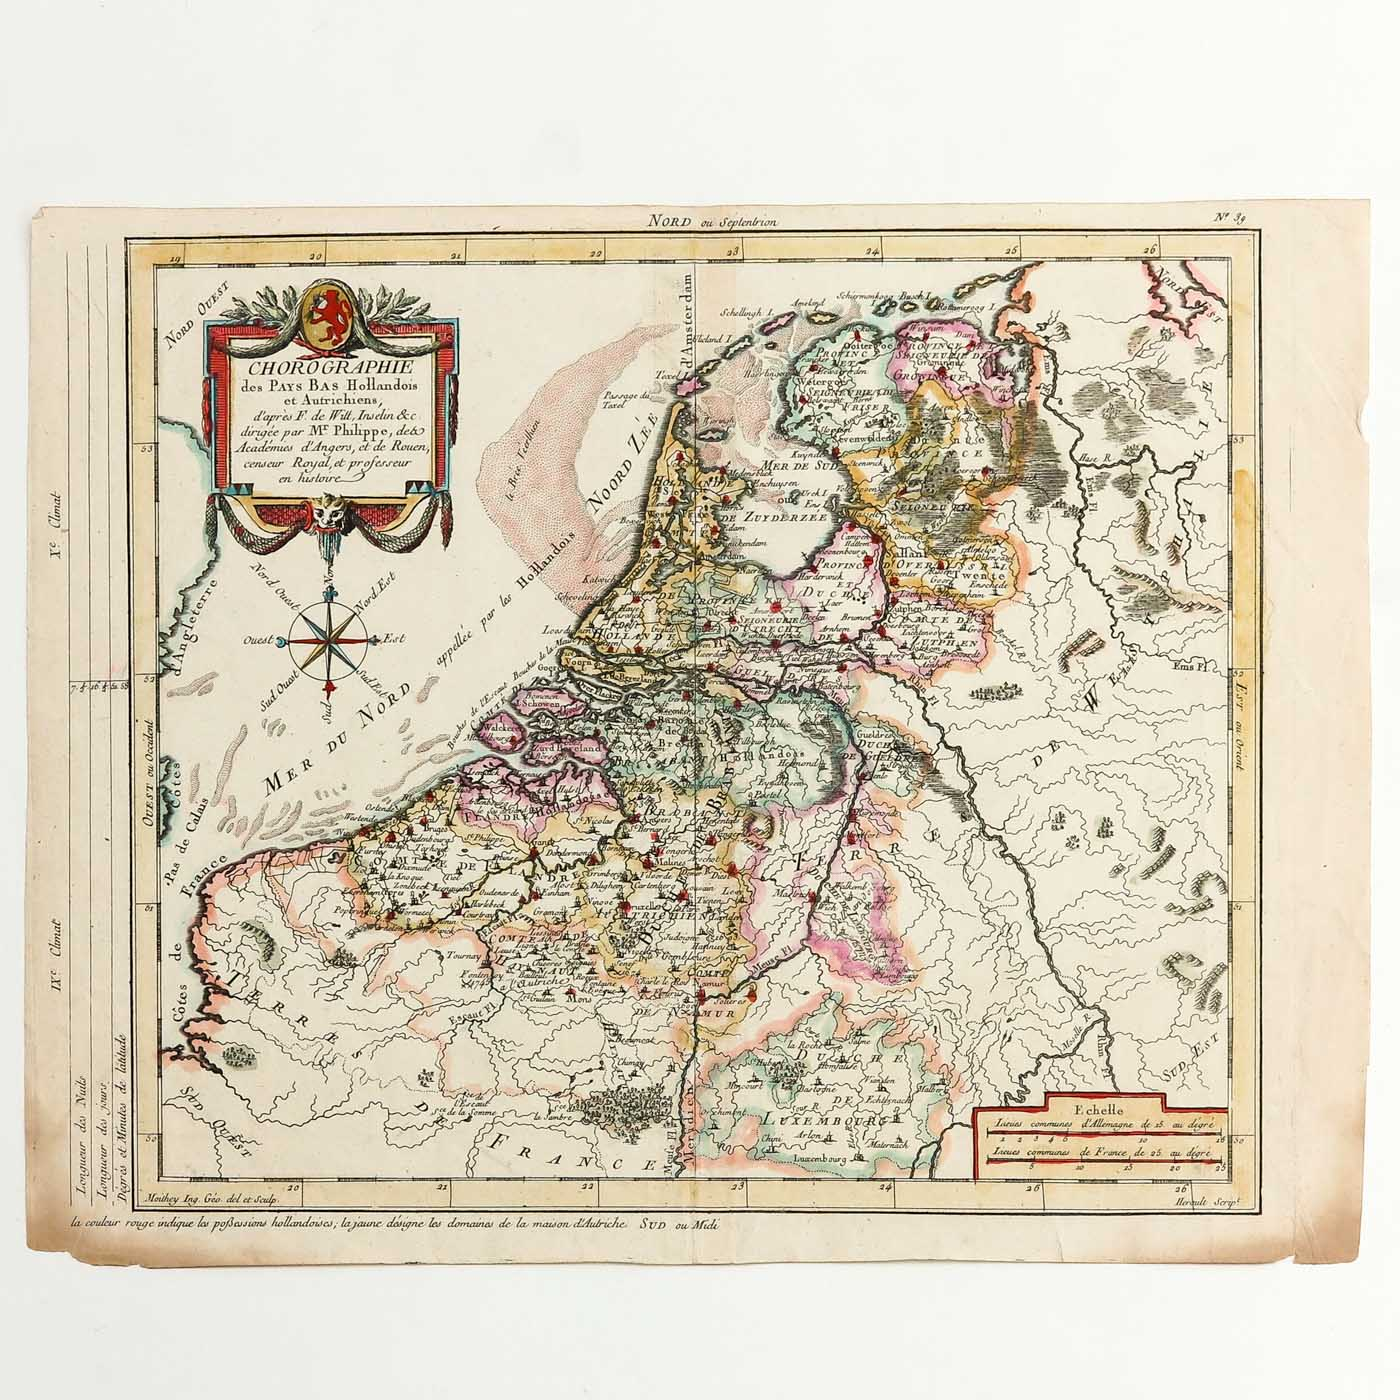 A Collection of Old Prints and Topographic Maps - Image 2 of 5